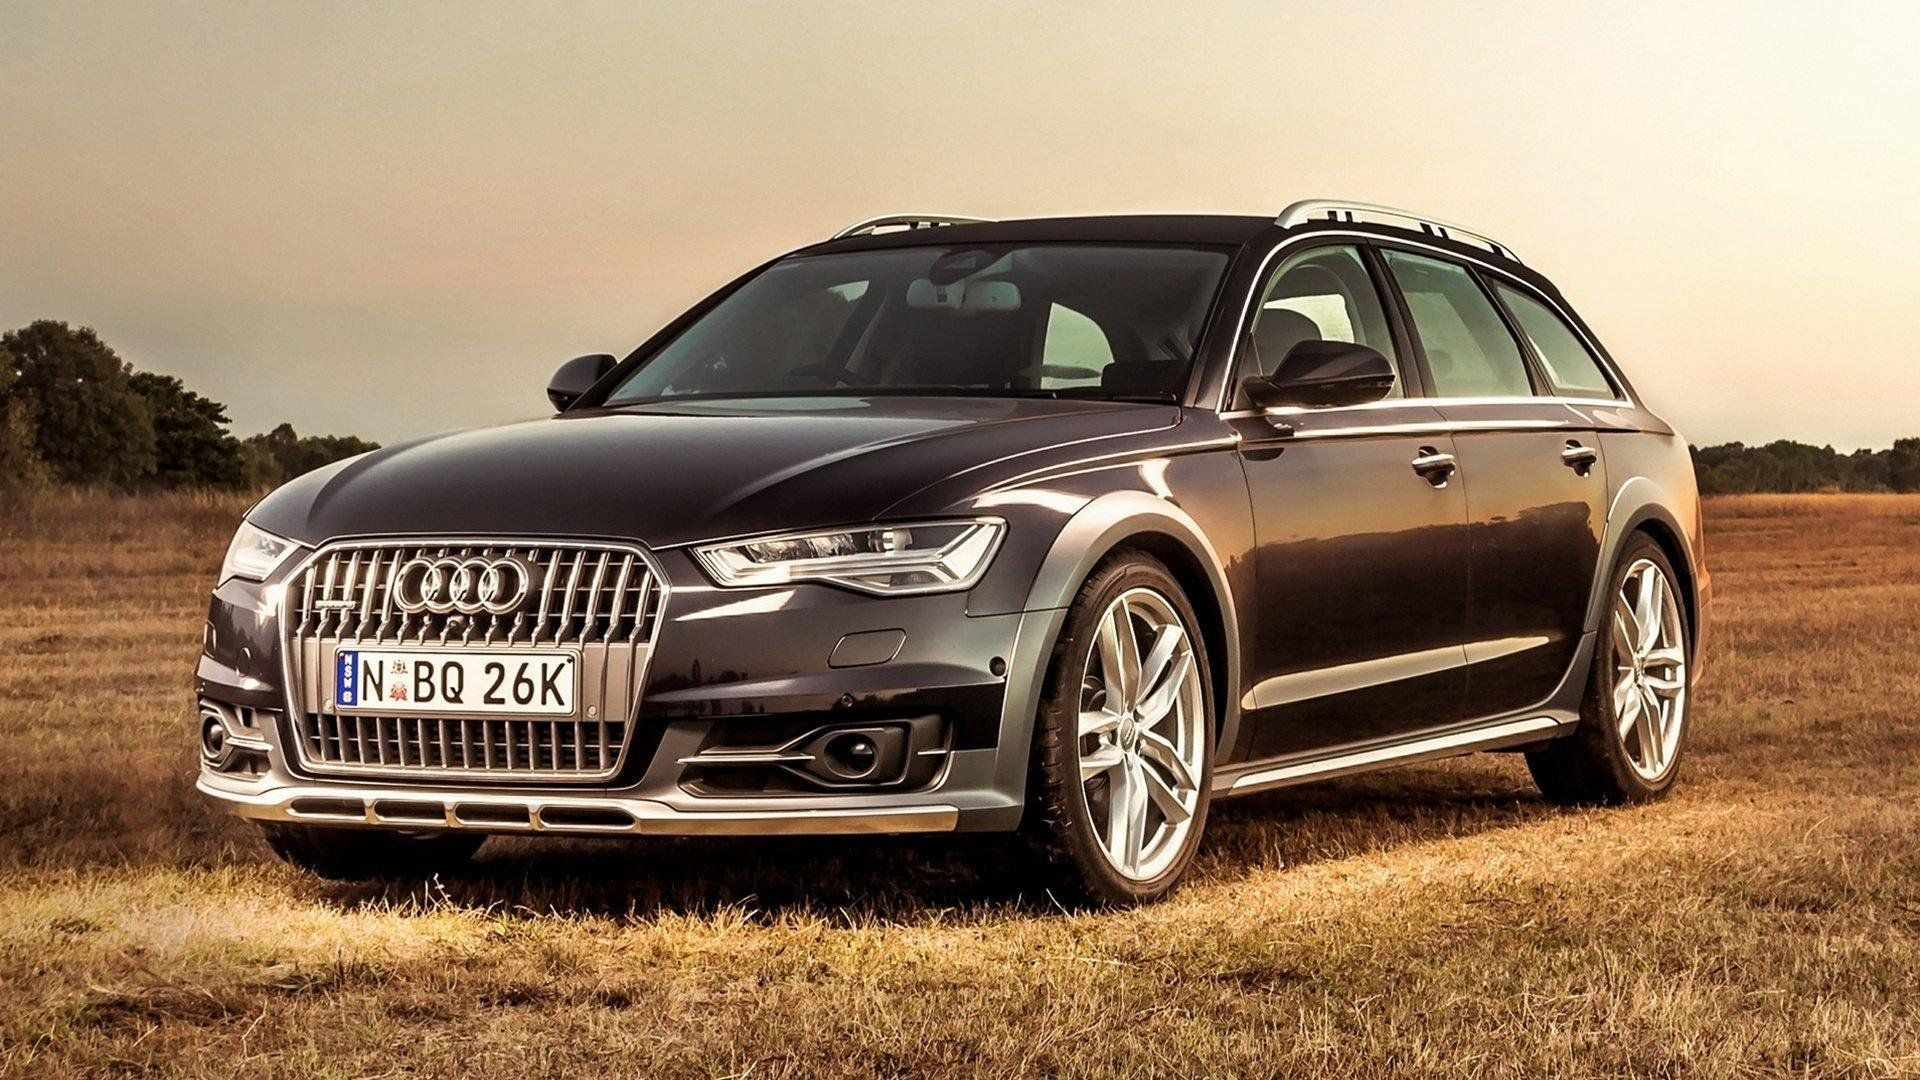 Audi A6 Wallpaper Hd 44 Image Collections Of Wallpapers 1920x1080 - Medium